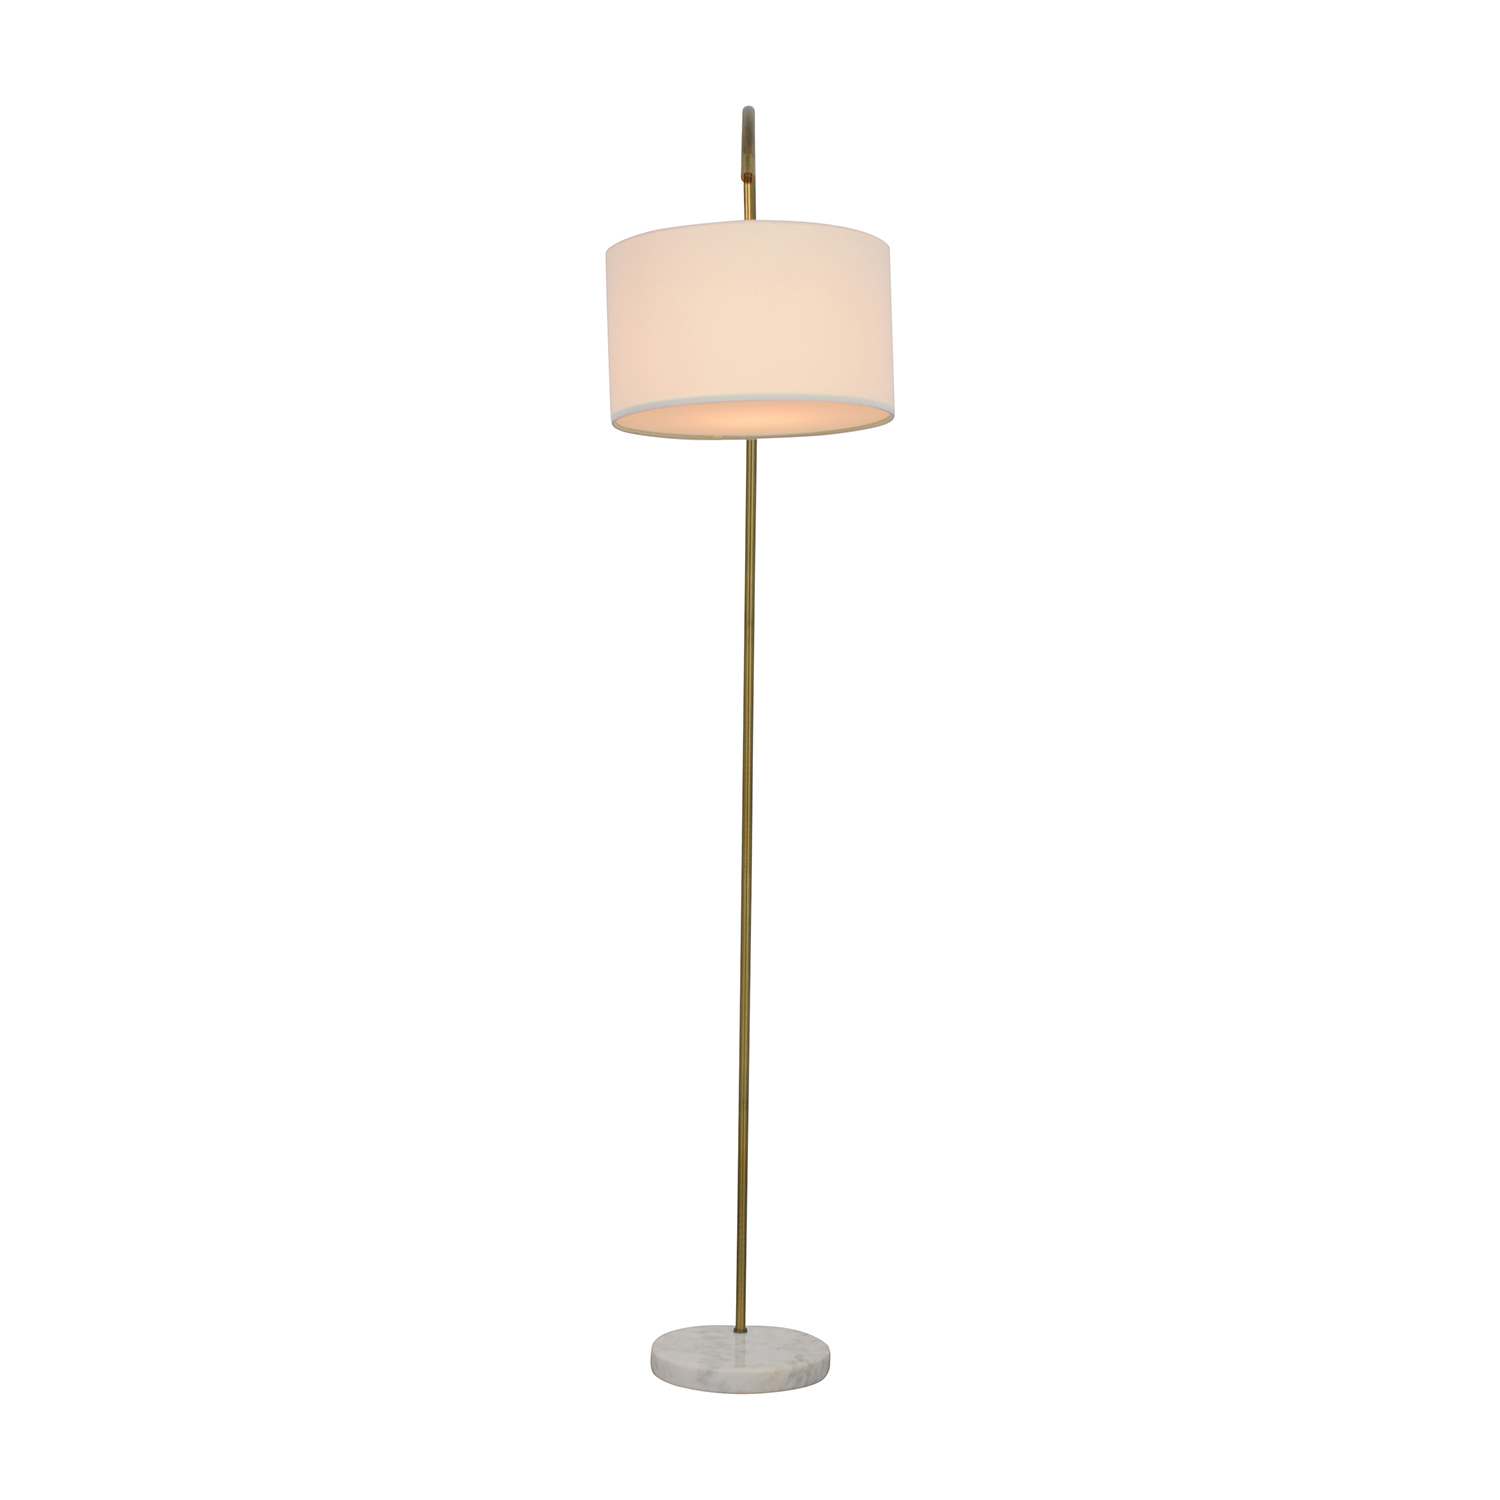 Cheap Floor Lamps Ikea Shop Quality Used Furniture From Top Furniture Brands